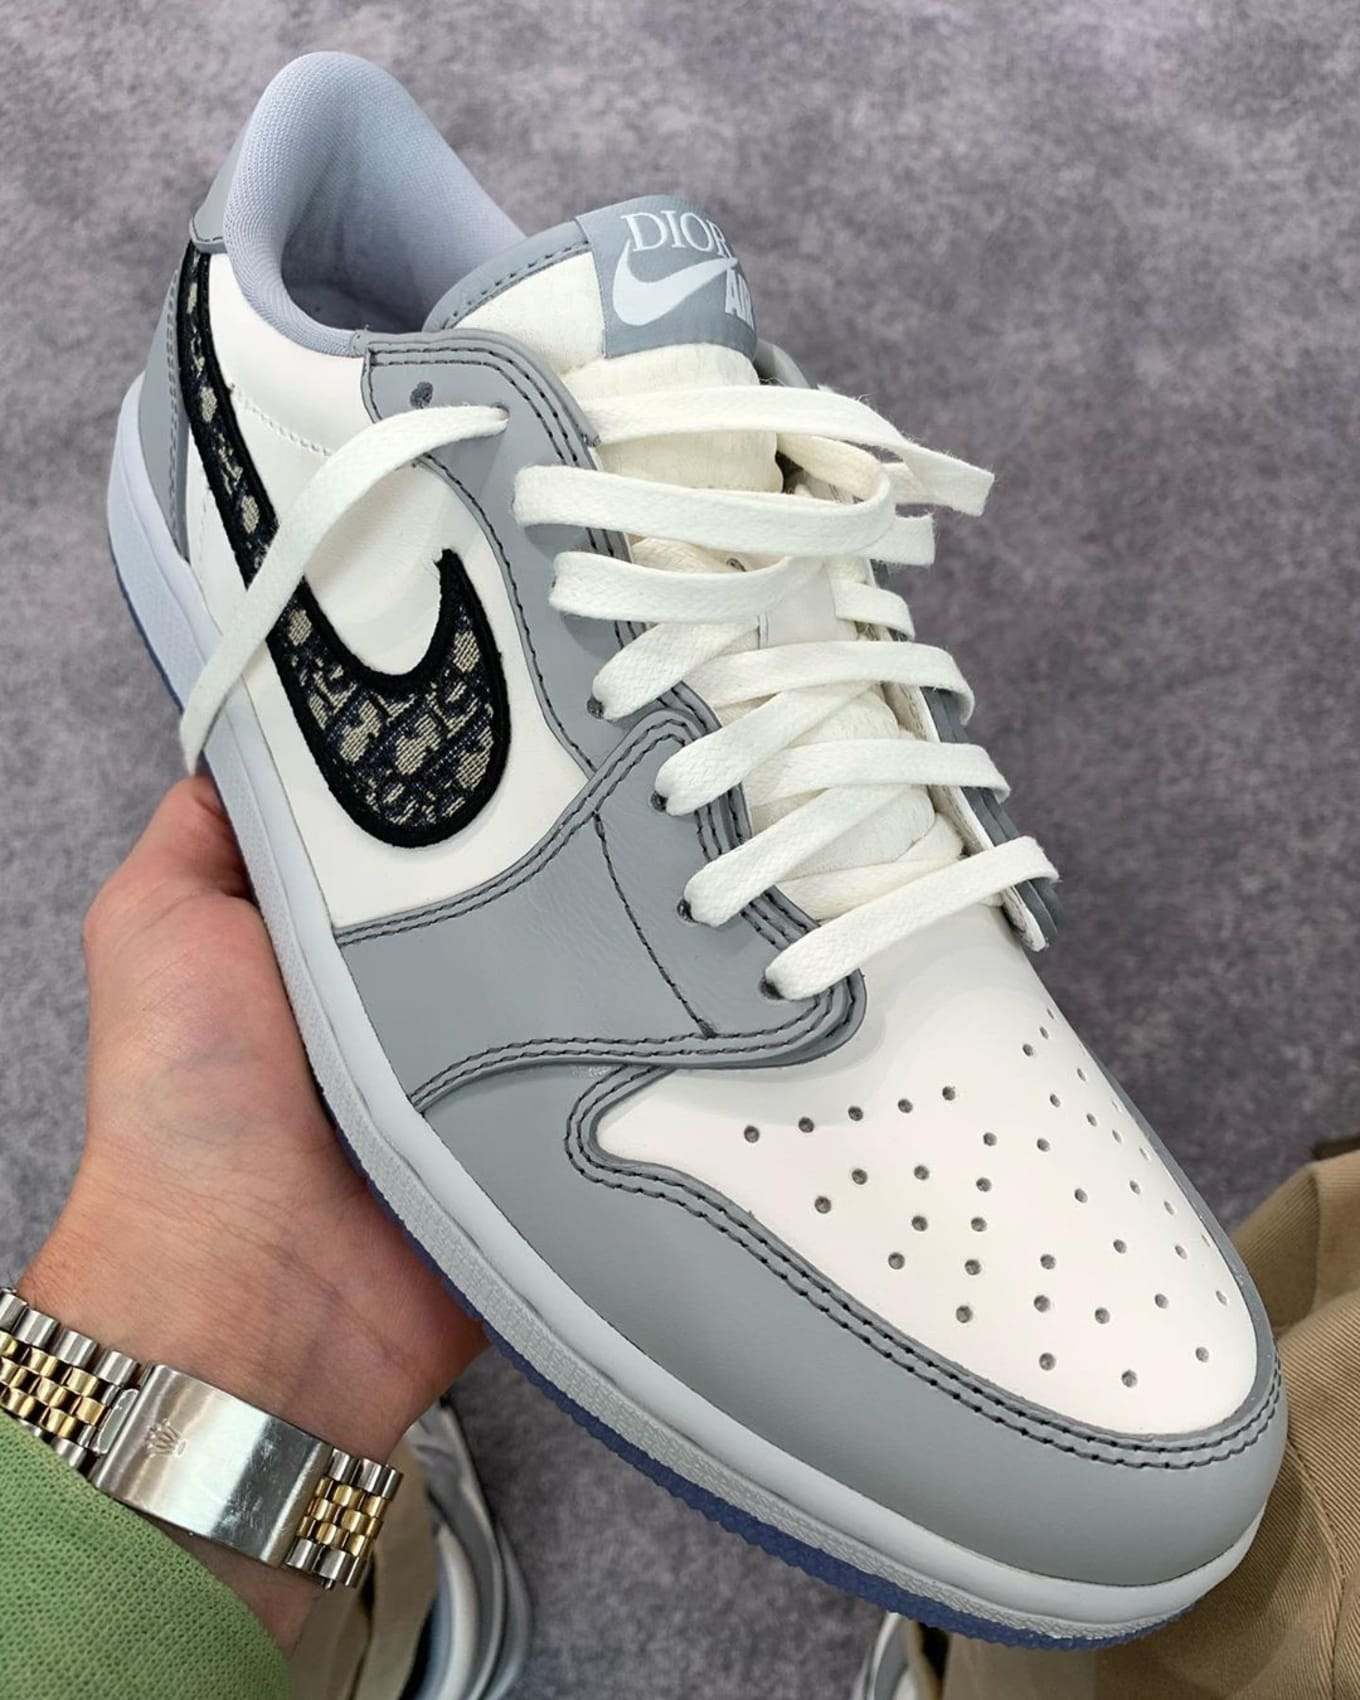 Dior x Air Jordan 1 Low First Look | Sole Collector